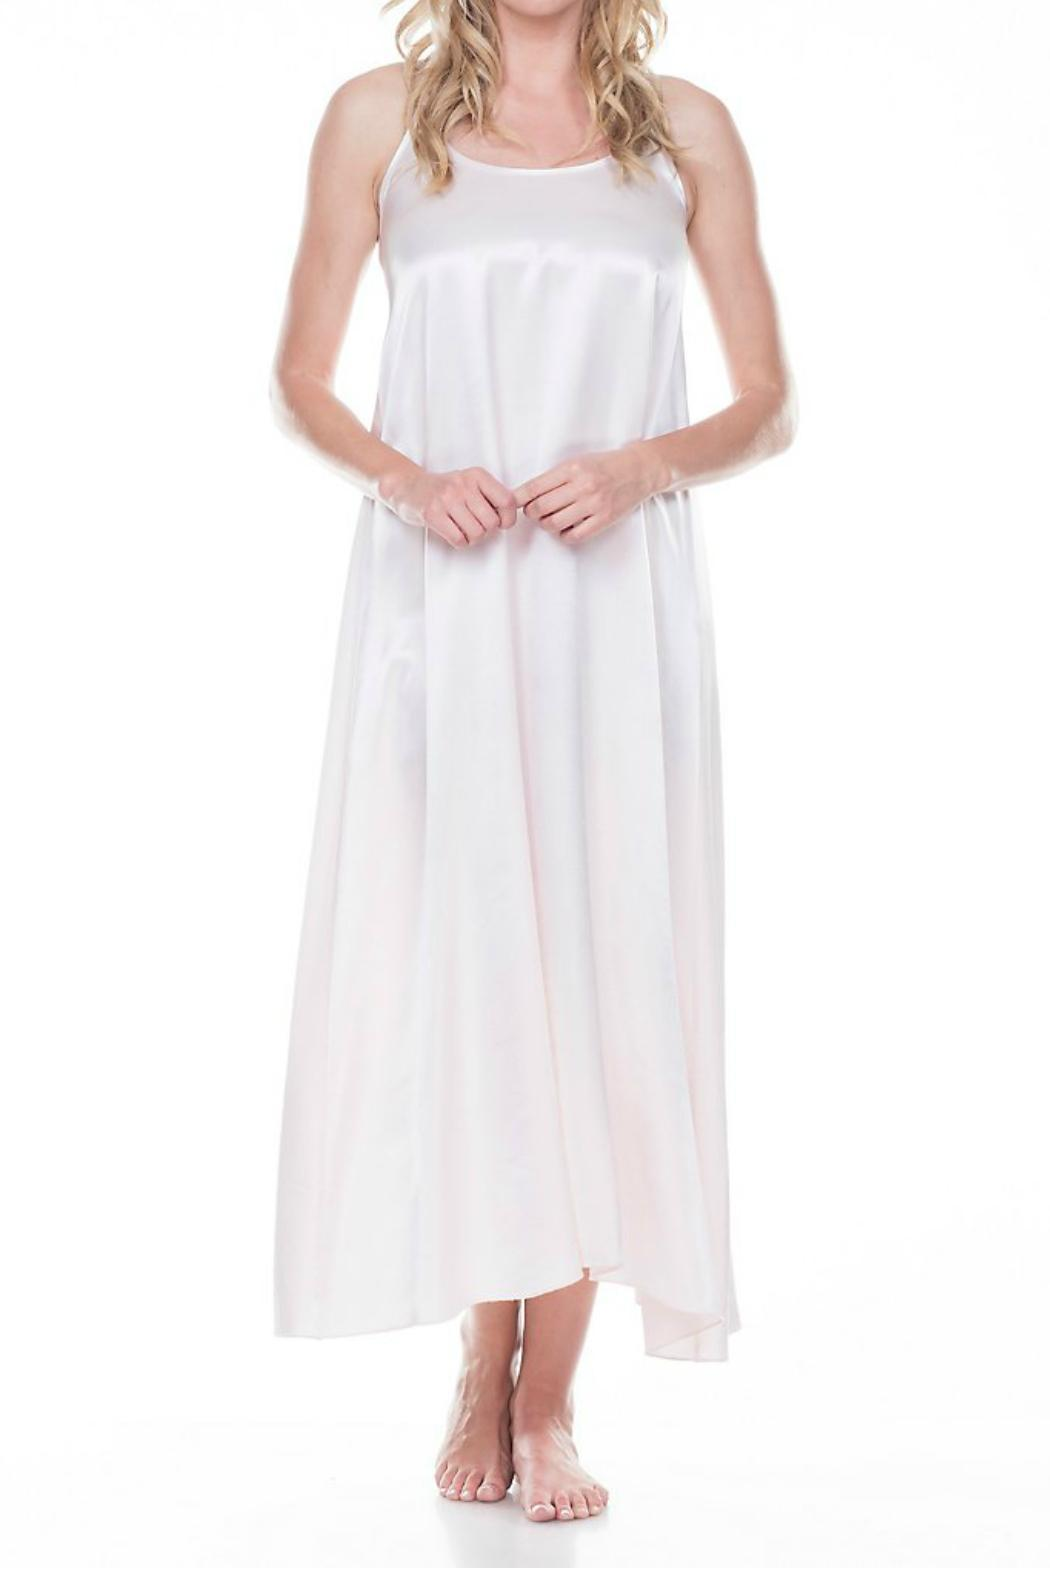 PJ Harlow Satin Long Nightgown from Rhode Island by Soap ...